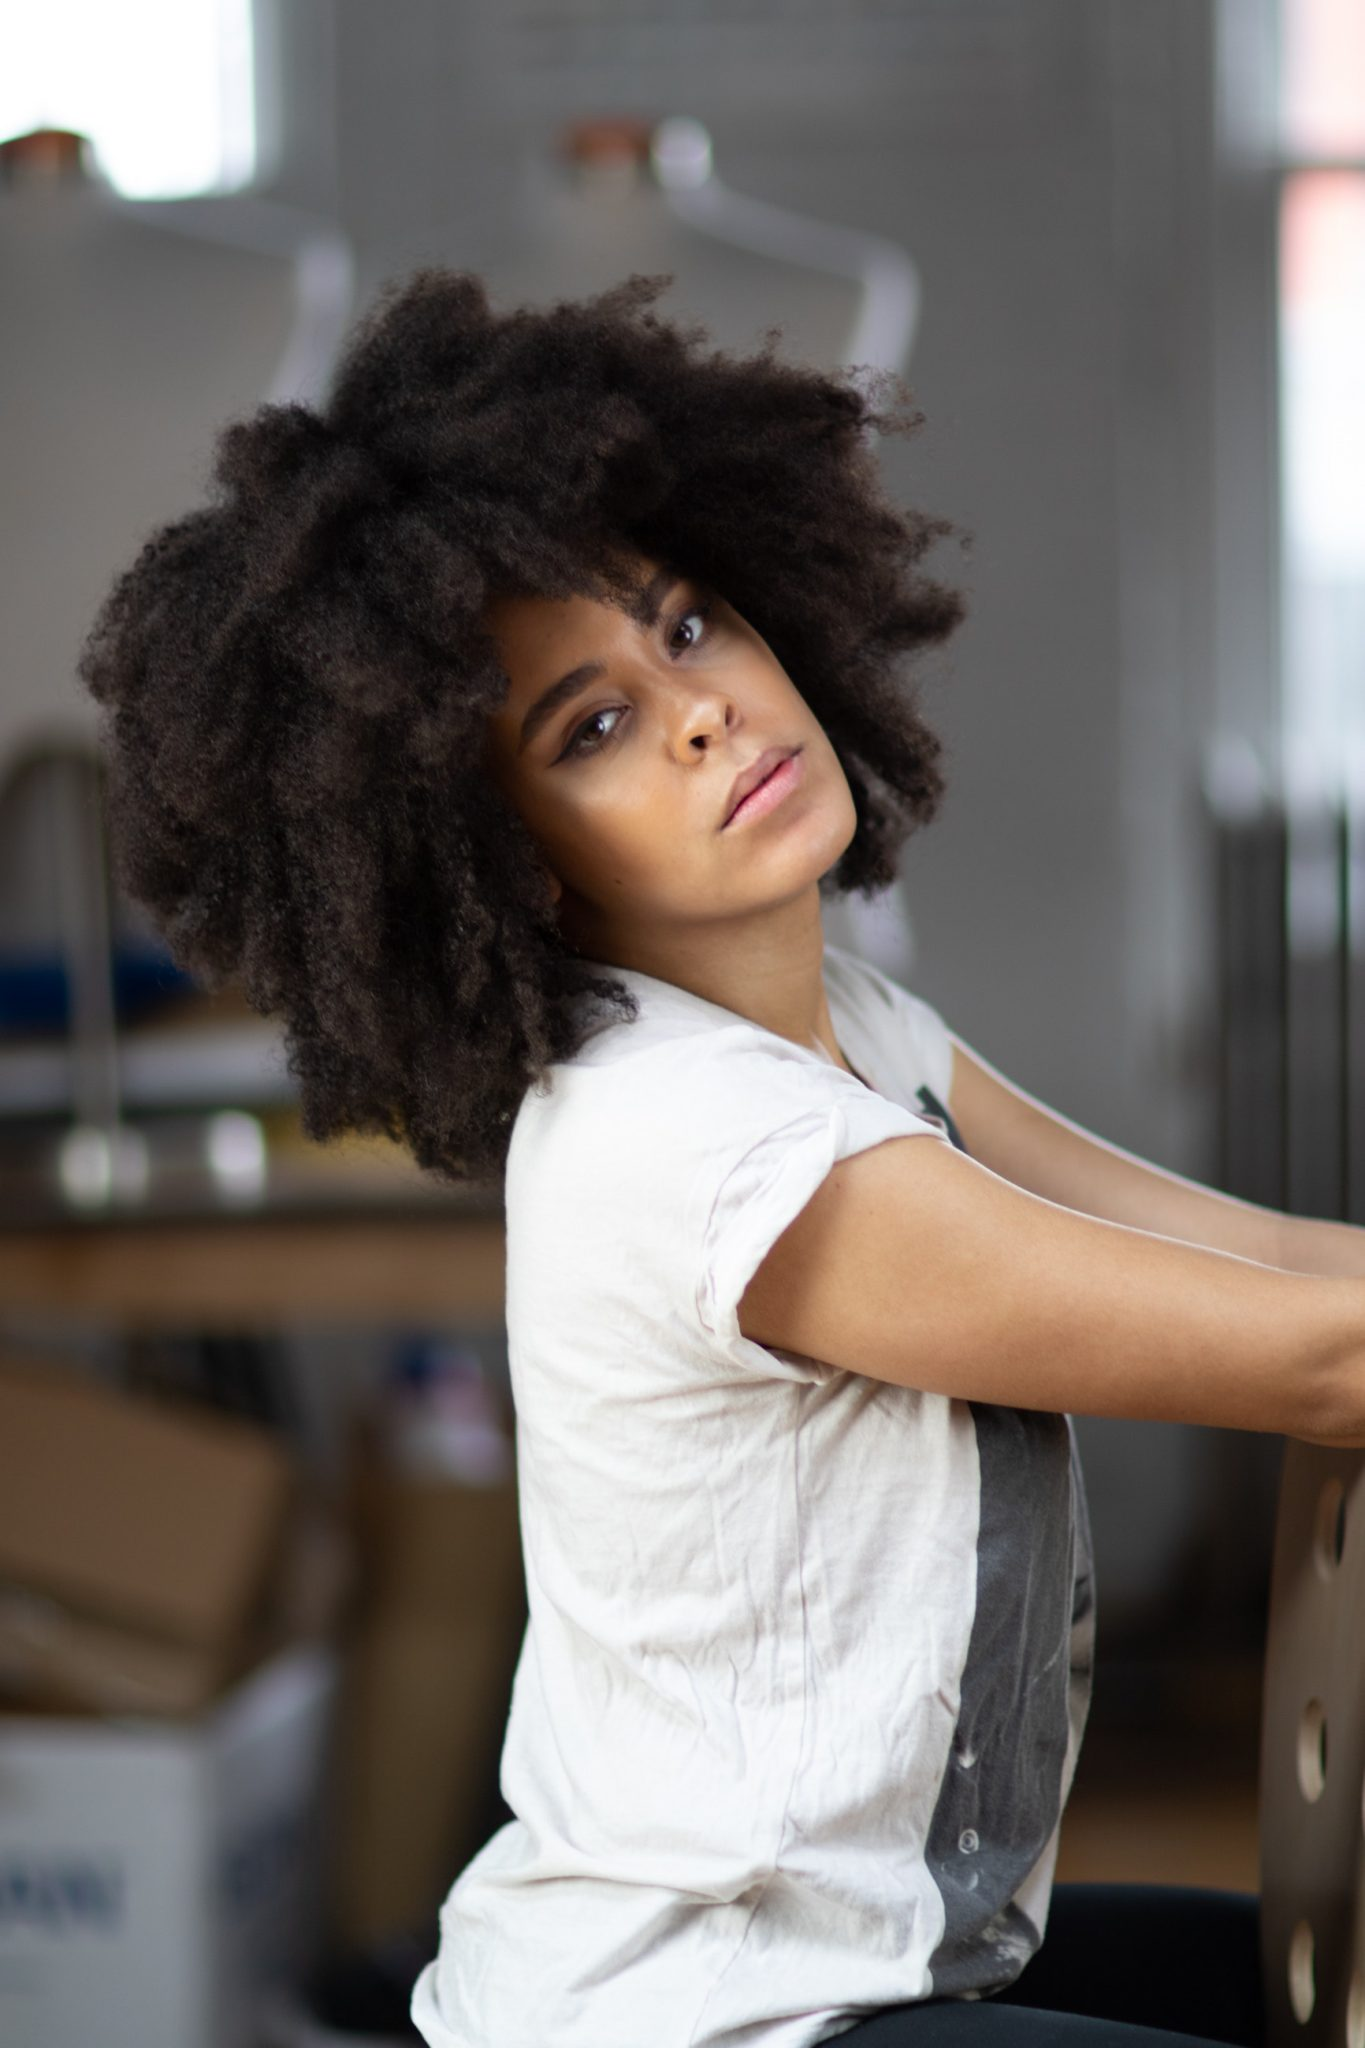 Afro Beautiful Woman wearing a white shirt is showcasing her natural hair